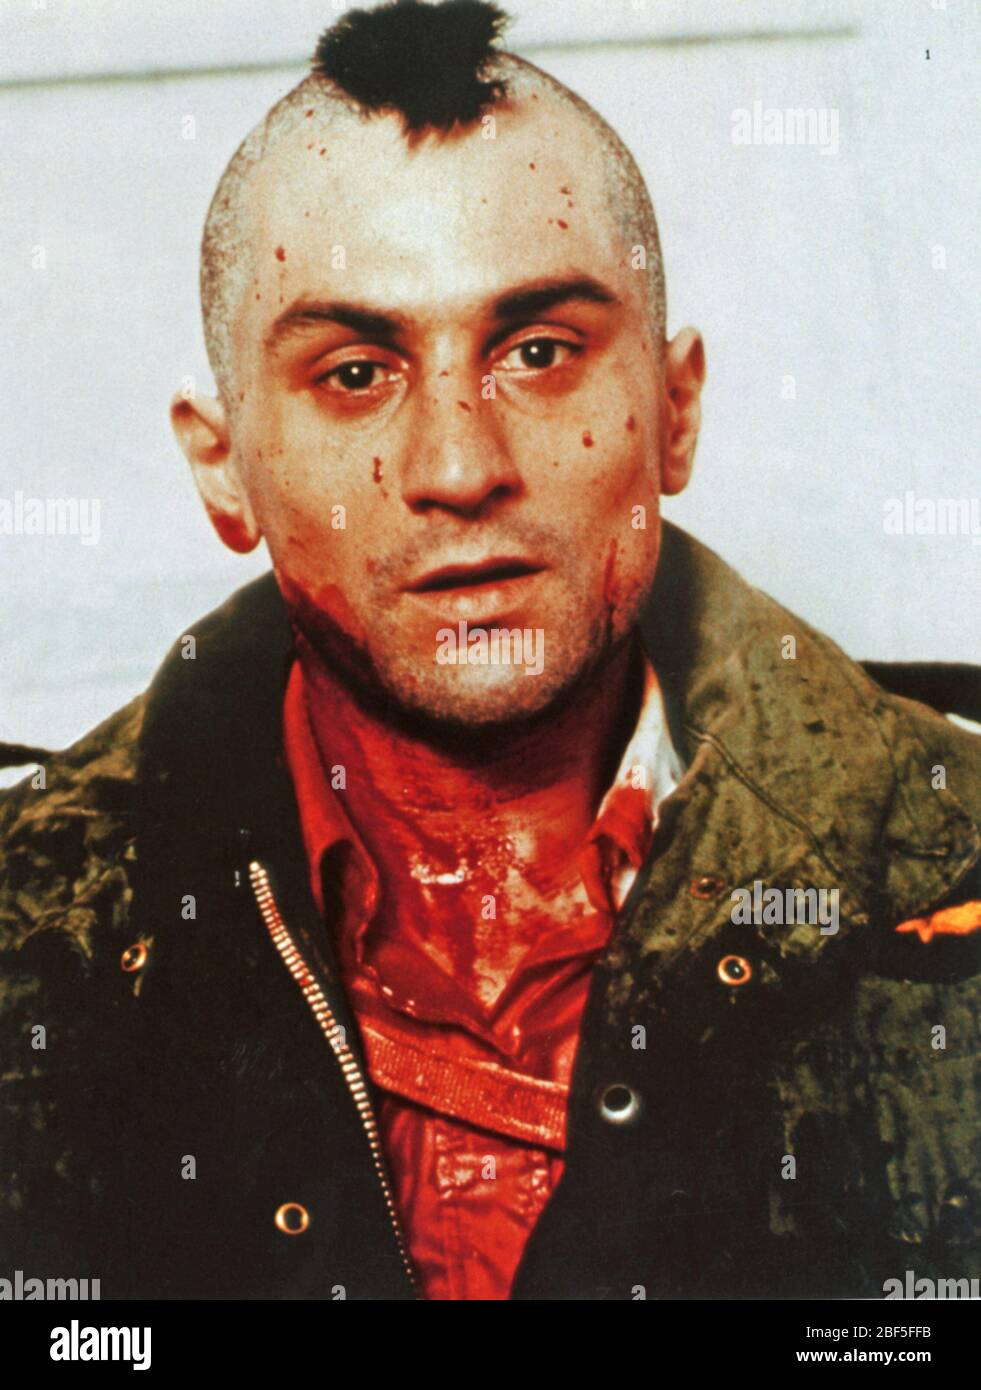 Taxi Driver Film Robert High Resolution Stock Photography And Images Alamy